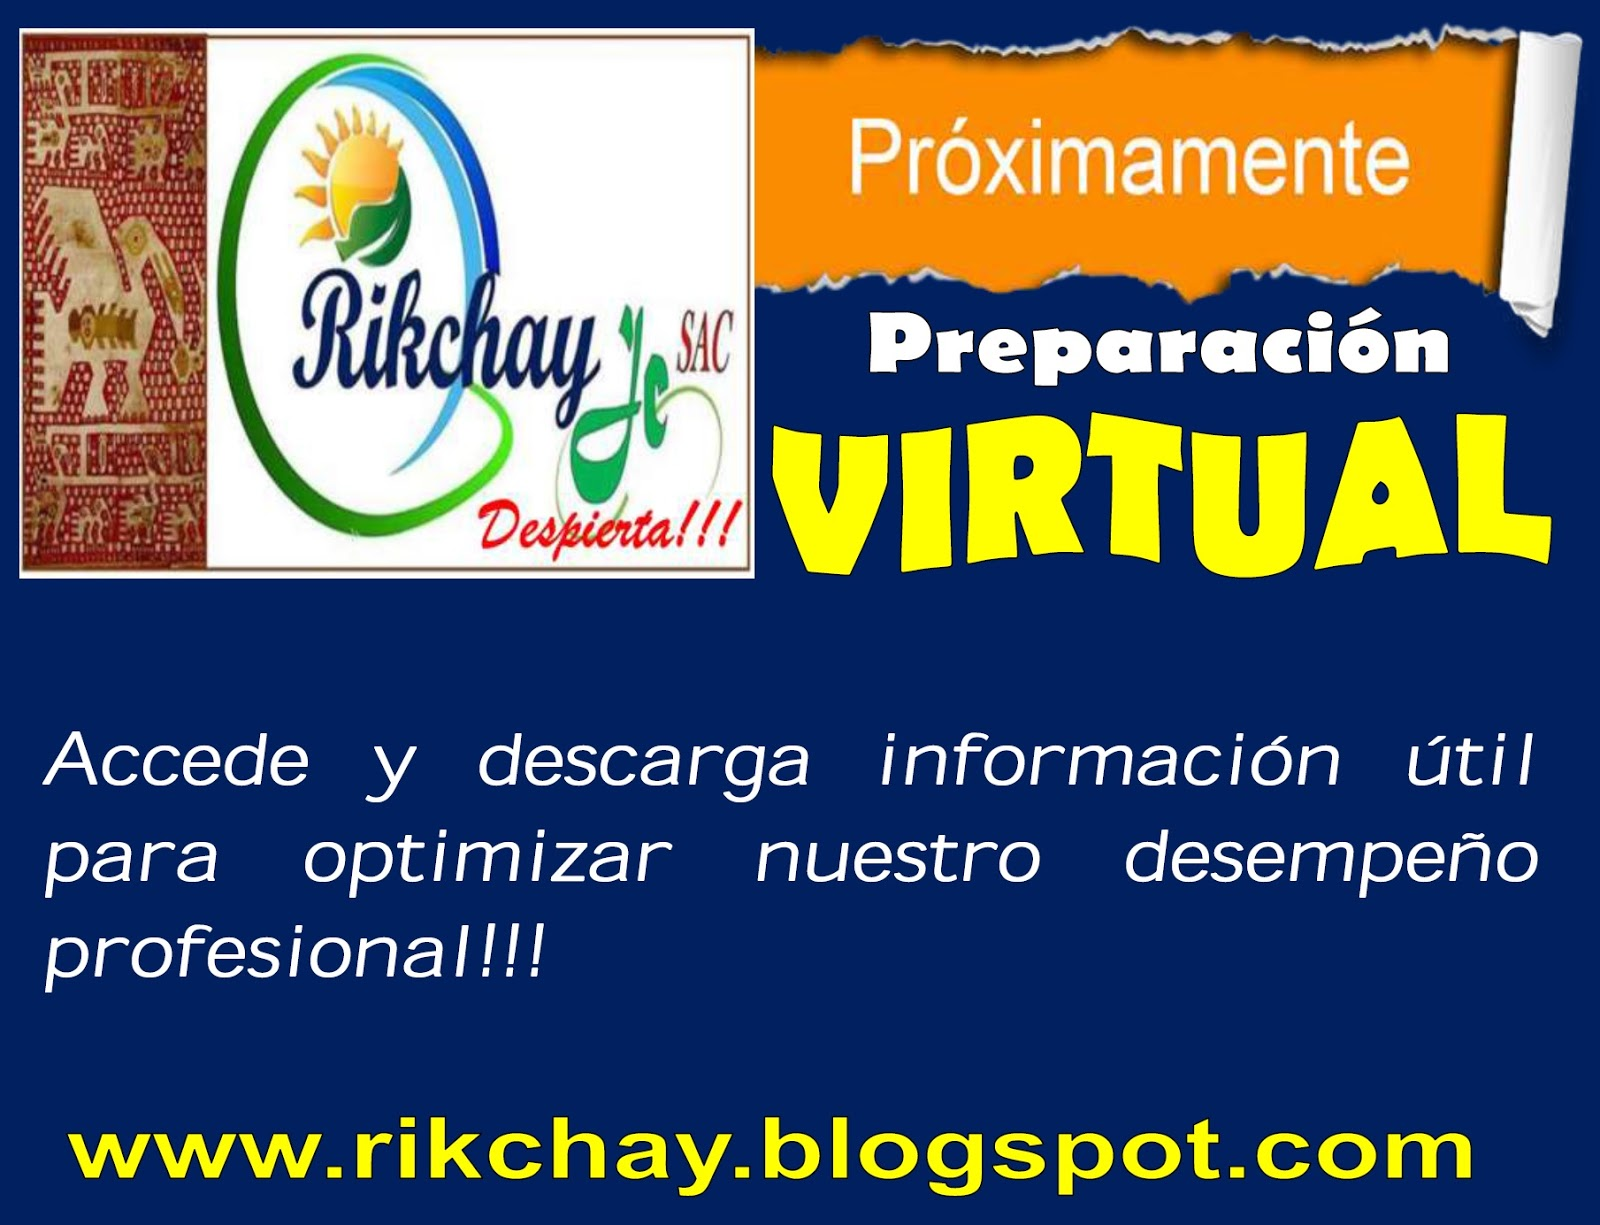 Organizaci N Educativa Rikchay Jc Descarga Plazas De